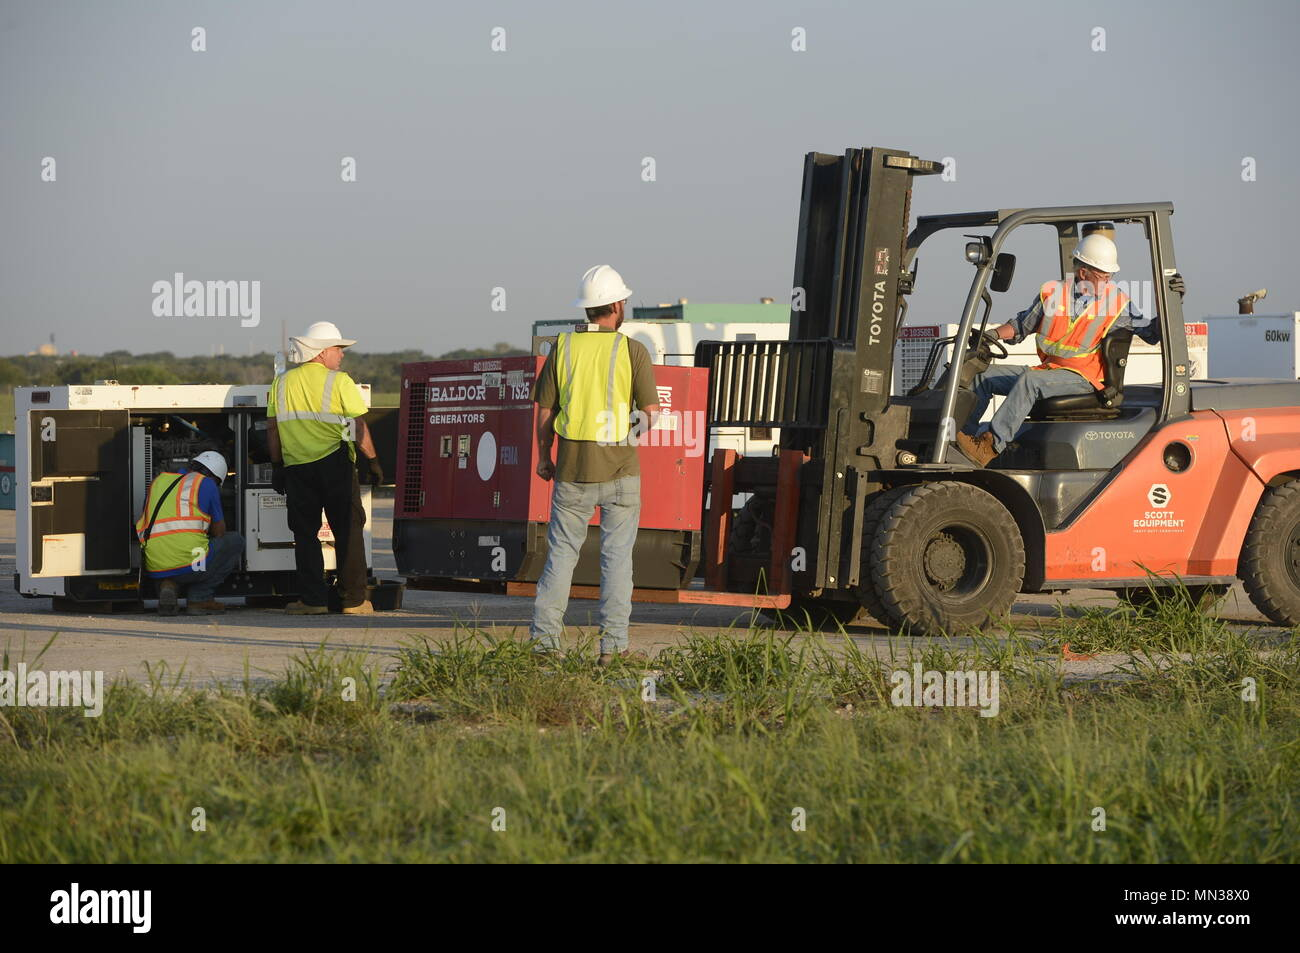 ACI contractors move a Federal Emergency Management Agency generator in support of Hurricane Harvey relief efforts, at JBSA Randolph auxiliary airfield, Seguin, Texas, August 31, 2017. The category-4 hurricane, with wind speeds of 130 mph, made landfall August 25, 2017.  Days after the hurricane reached Texas, more than 50 inches of rain flooded the coastal region. (U.S. Air Force Photo by Tech. Sgt. Chad Chisholm/Released) Stock Photo